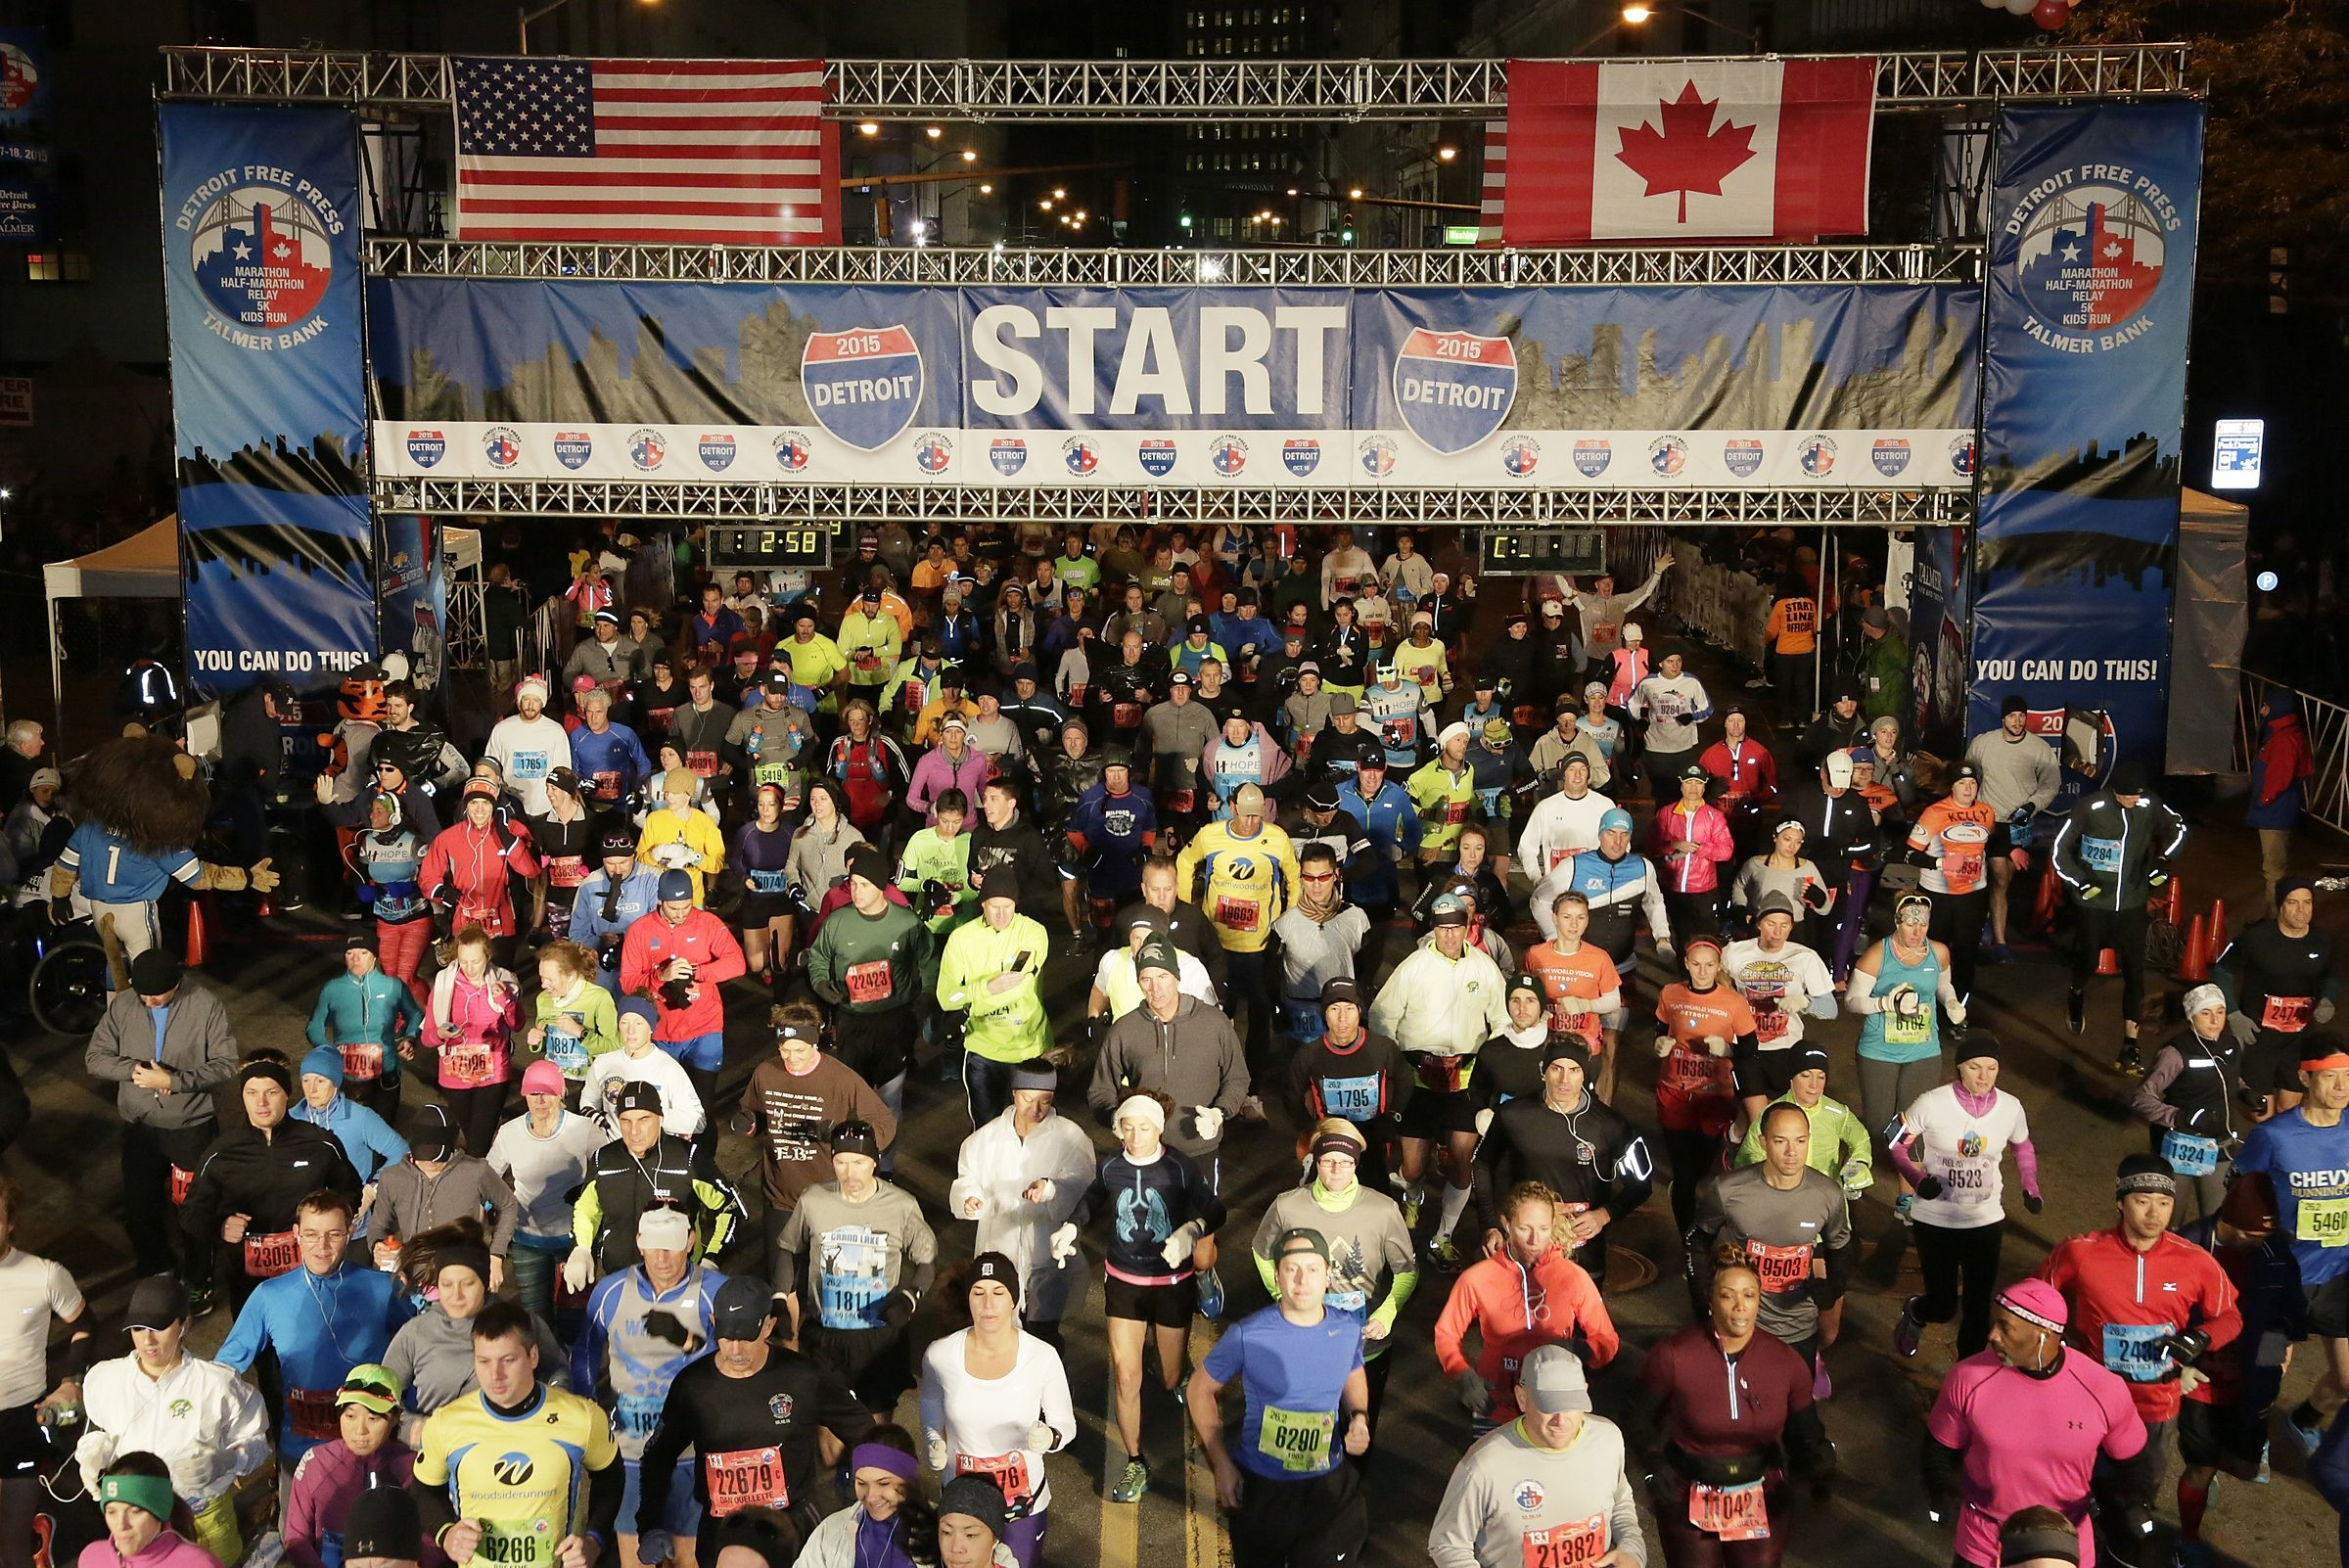 The Detroit Free Press Marathon, is joining other large cities in canceling its fall event because of the coronavirus